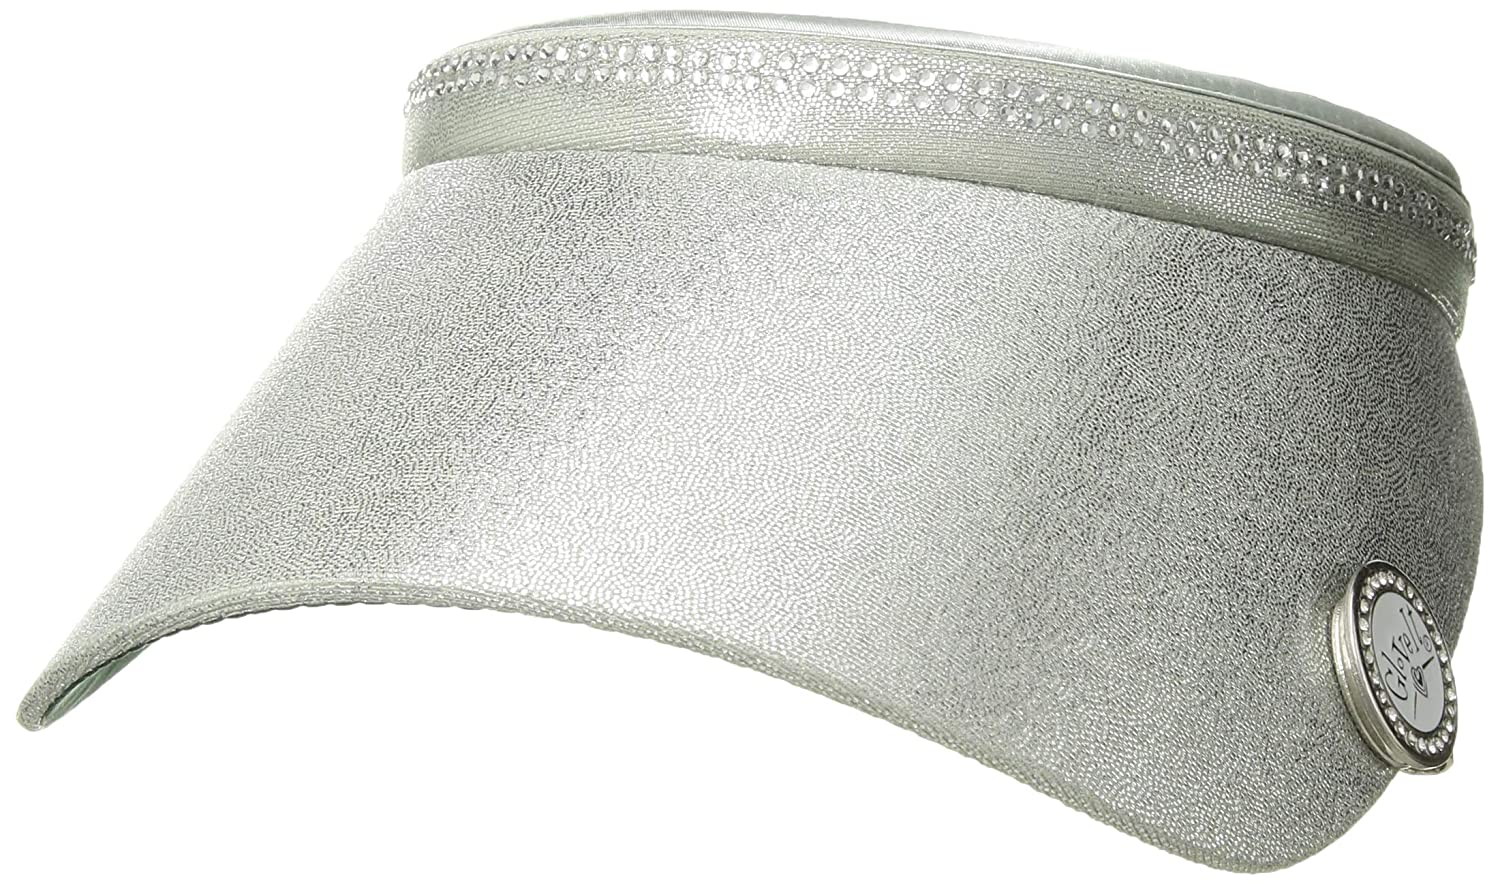 Glove It Women's Bling Visor (Black) VB118